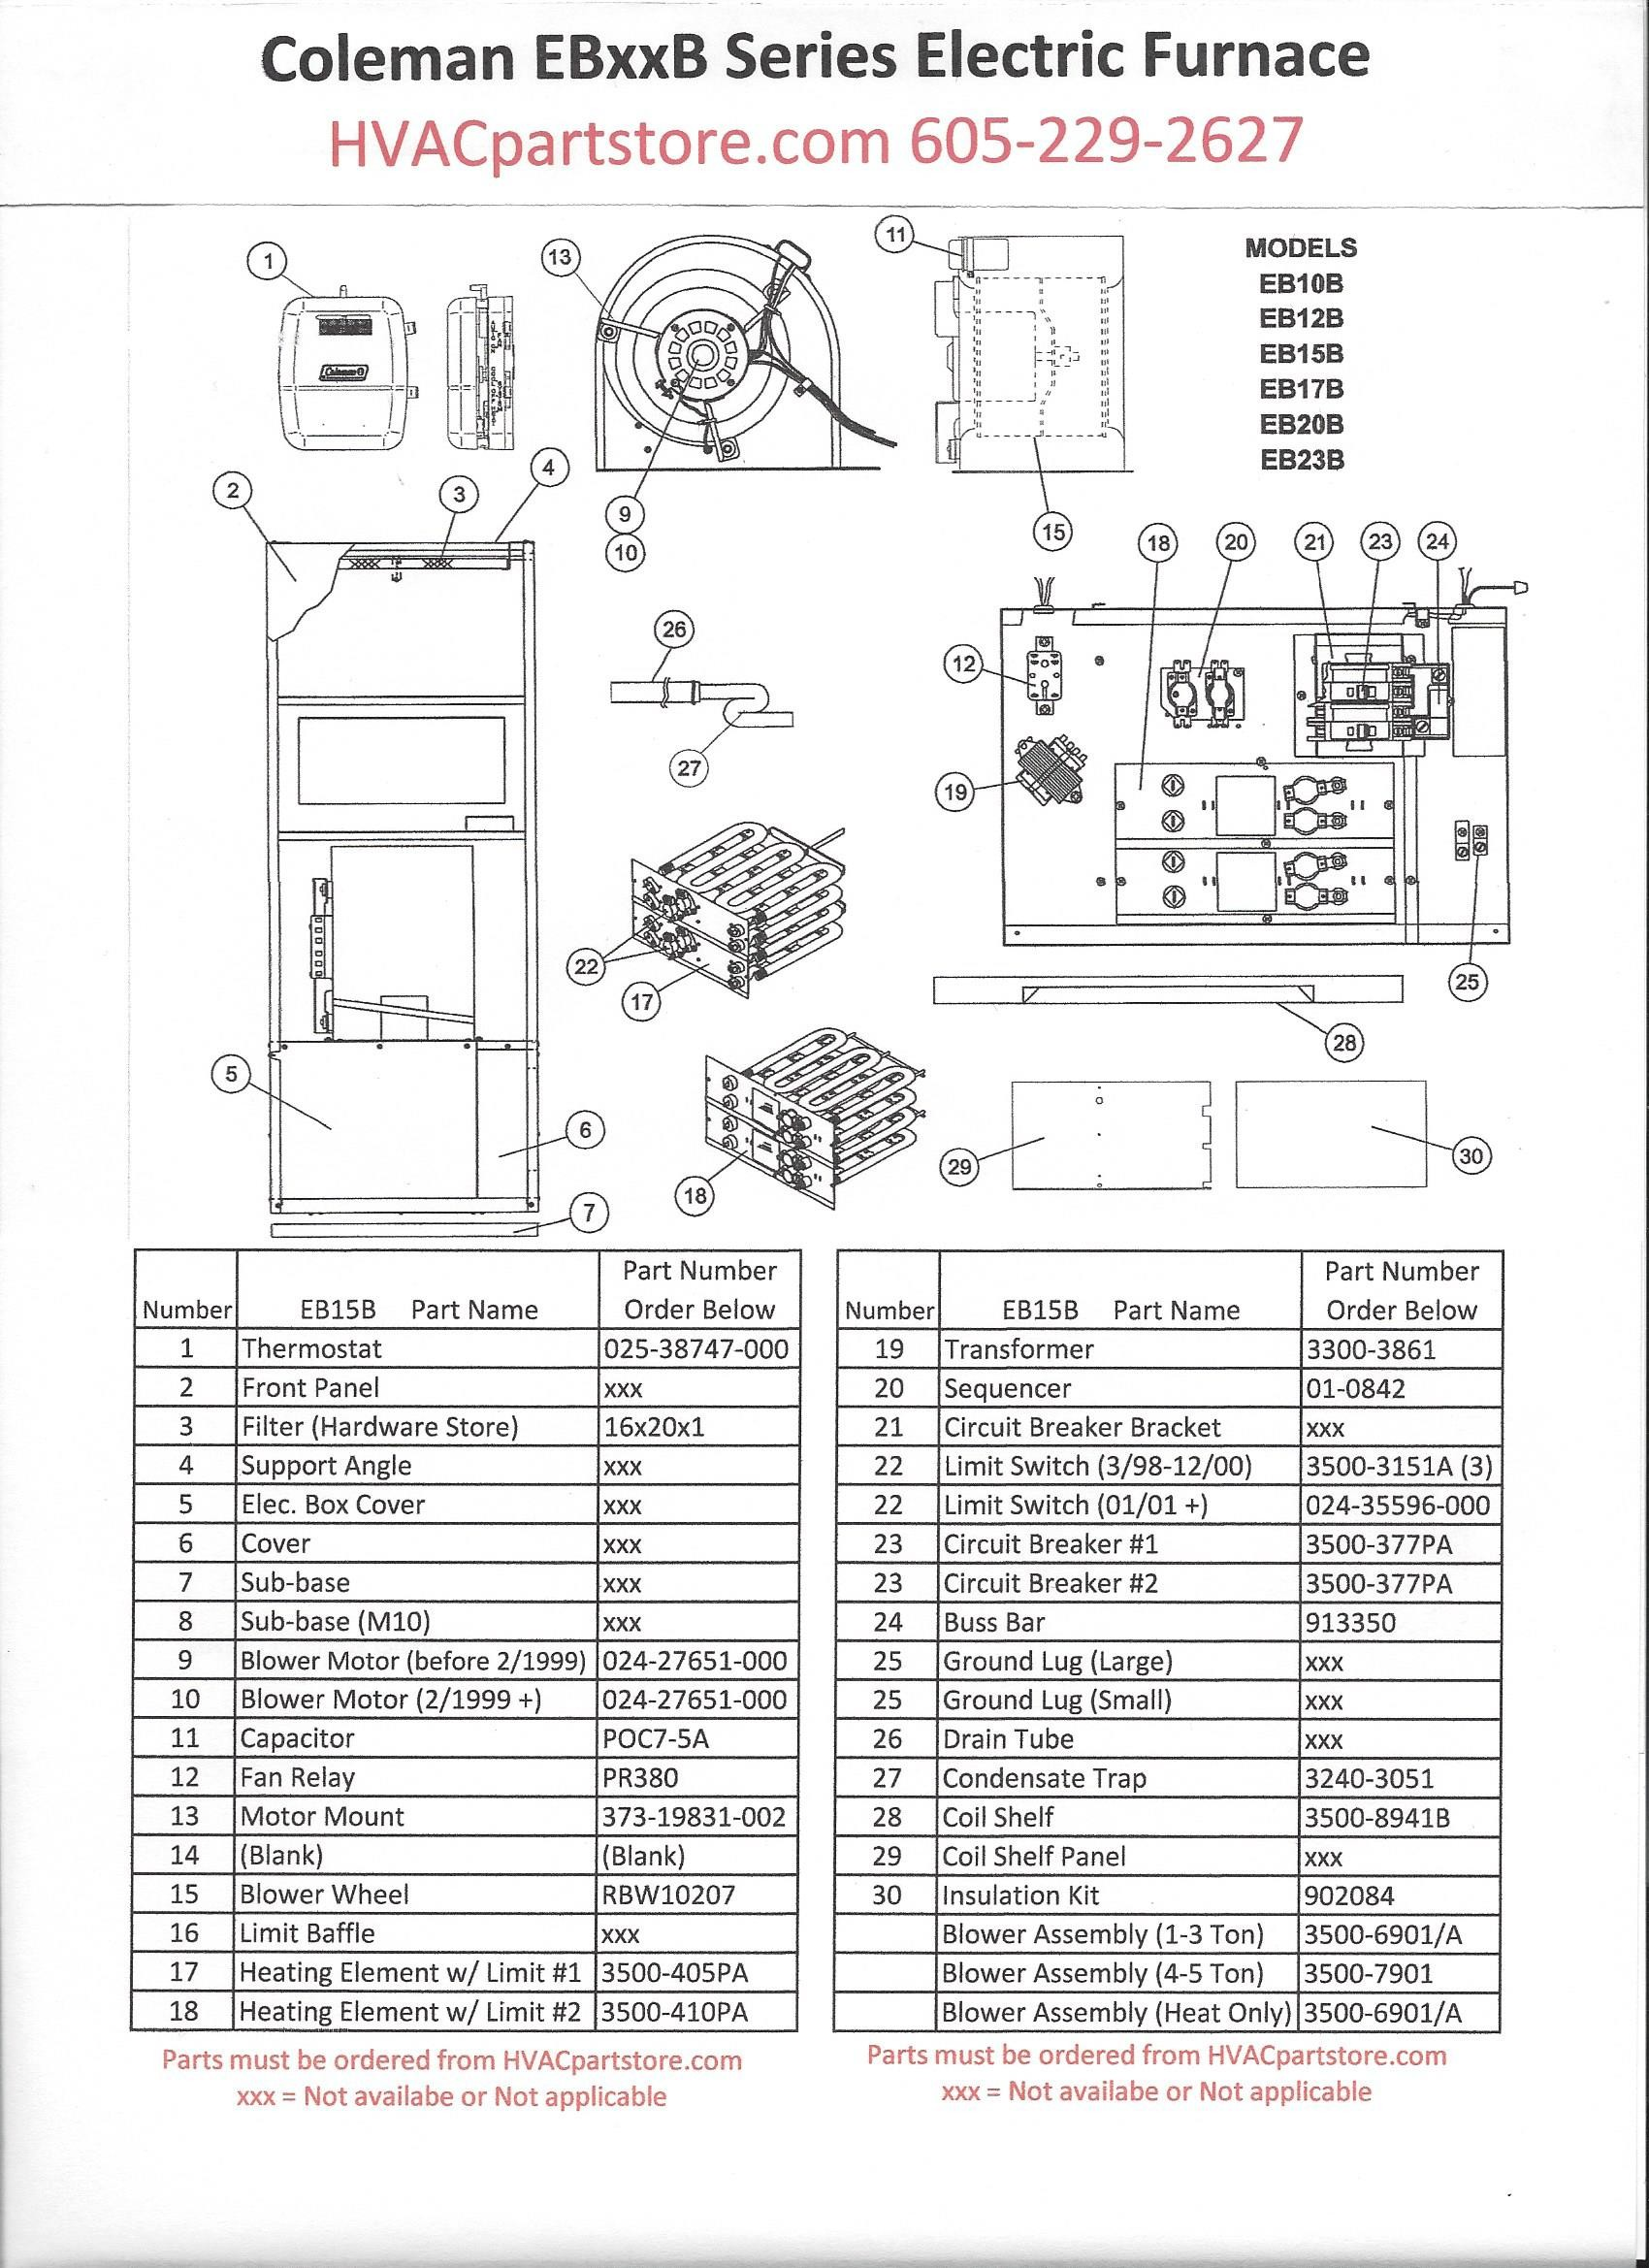 Goodman ac wiring diagram wiring diagram image beautiful intertherm electric furnace wiring diagram 20 for boss beauteous diagrams asfbconference2016 Choice Image